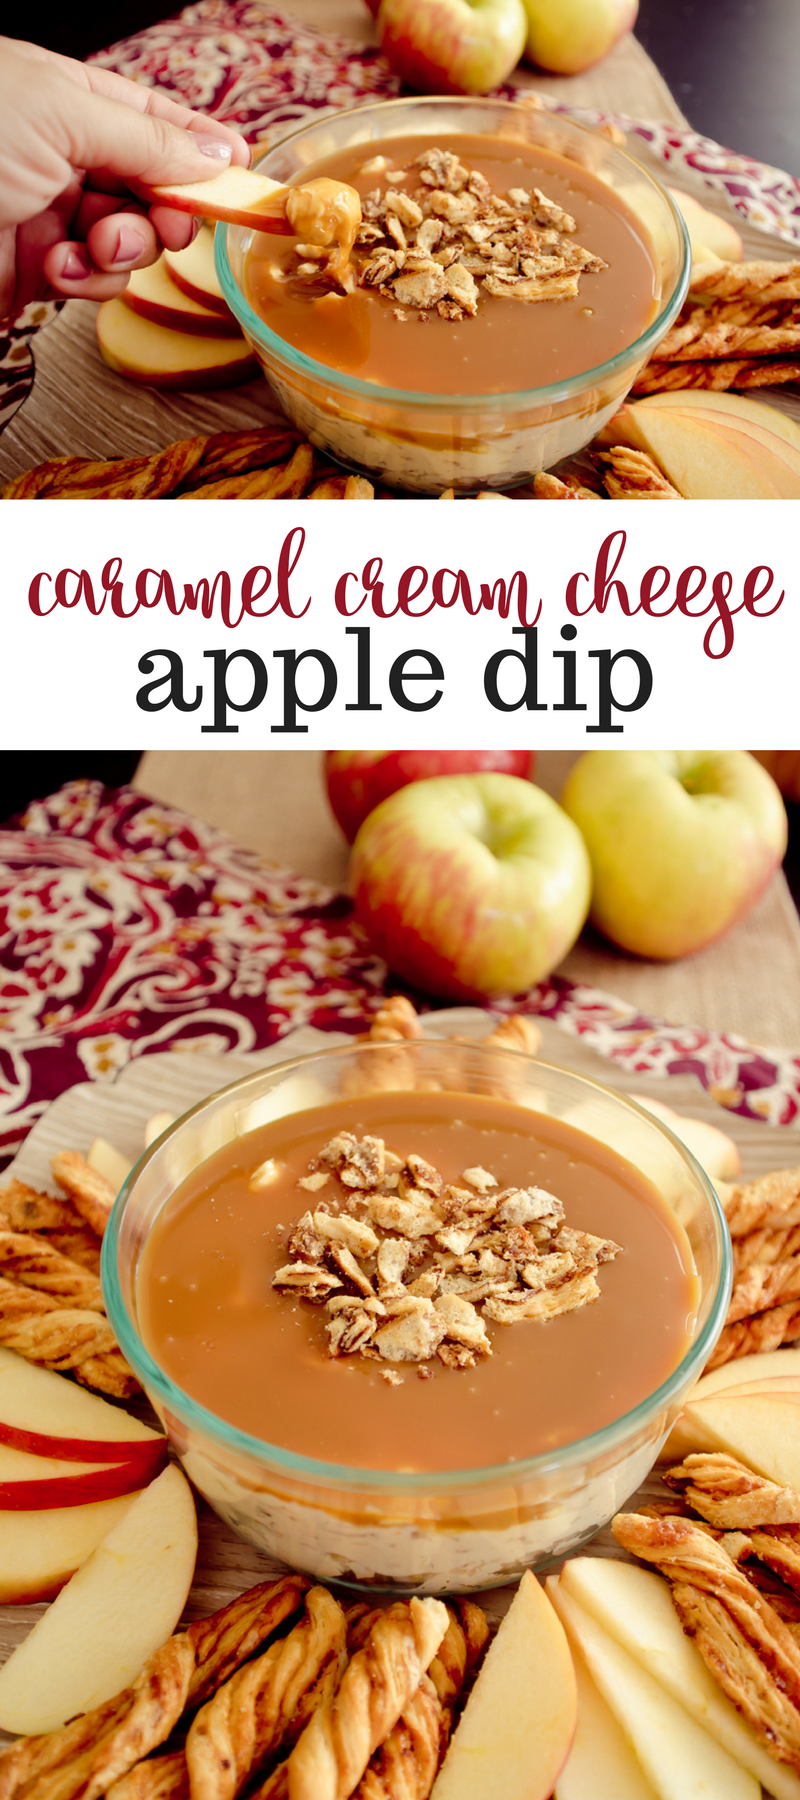 caramel-cream-cheese-apple-dip